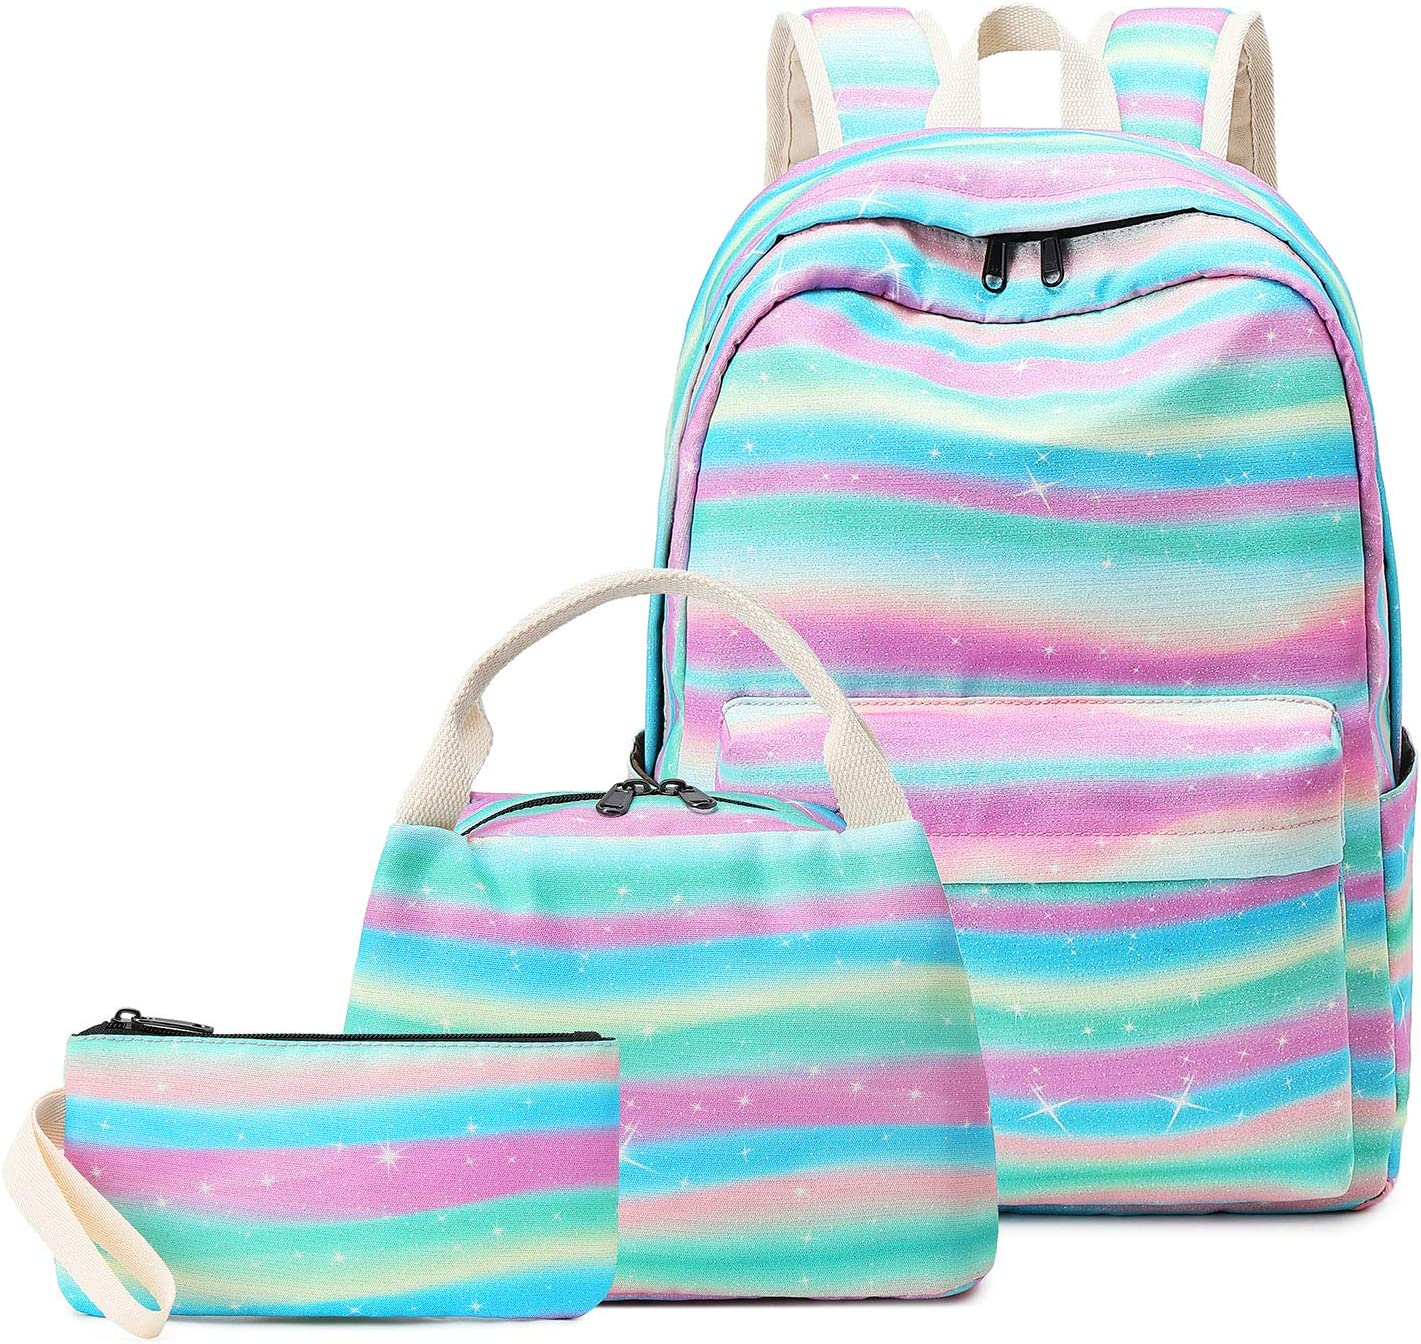 "Pawsky School Backpack Set, Canvas Girls Bookbag 15"" Laptop Backpack Daypack Kids School Bag with Lunch Bag Pencil Case, Rainbow"